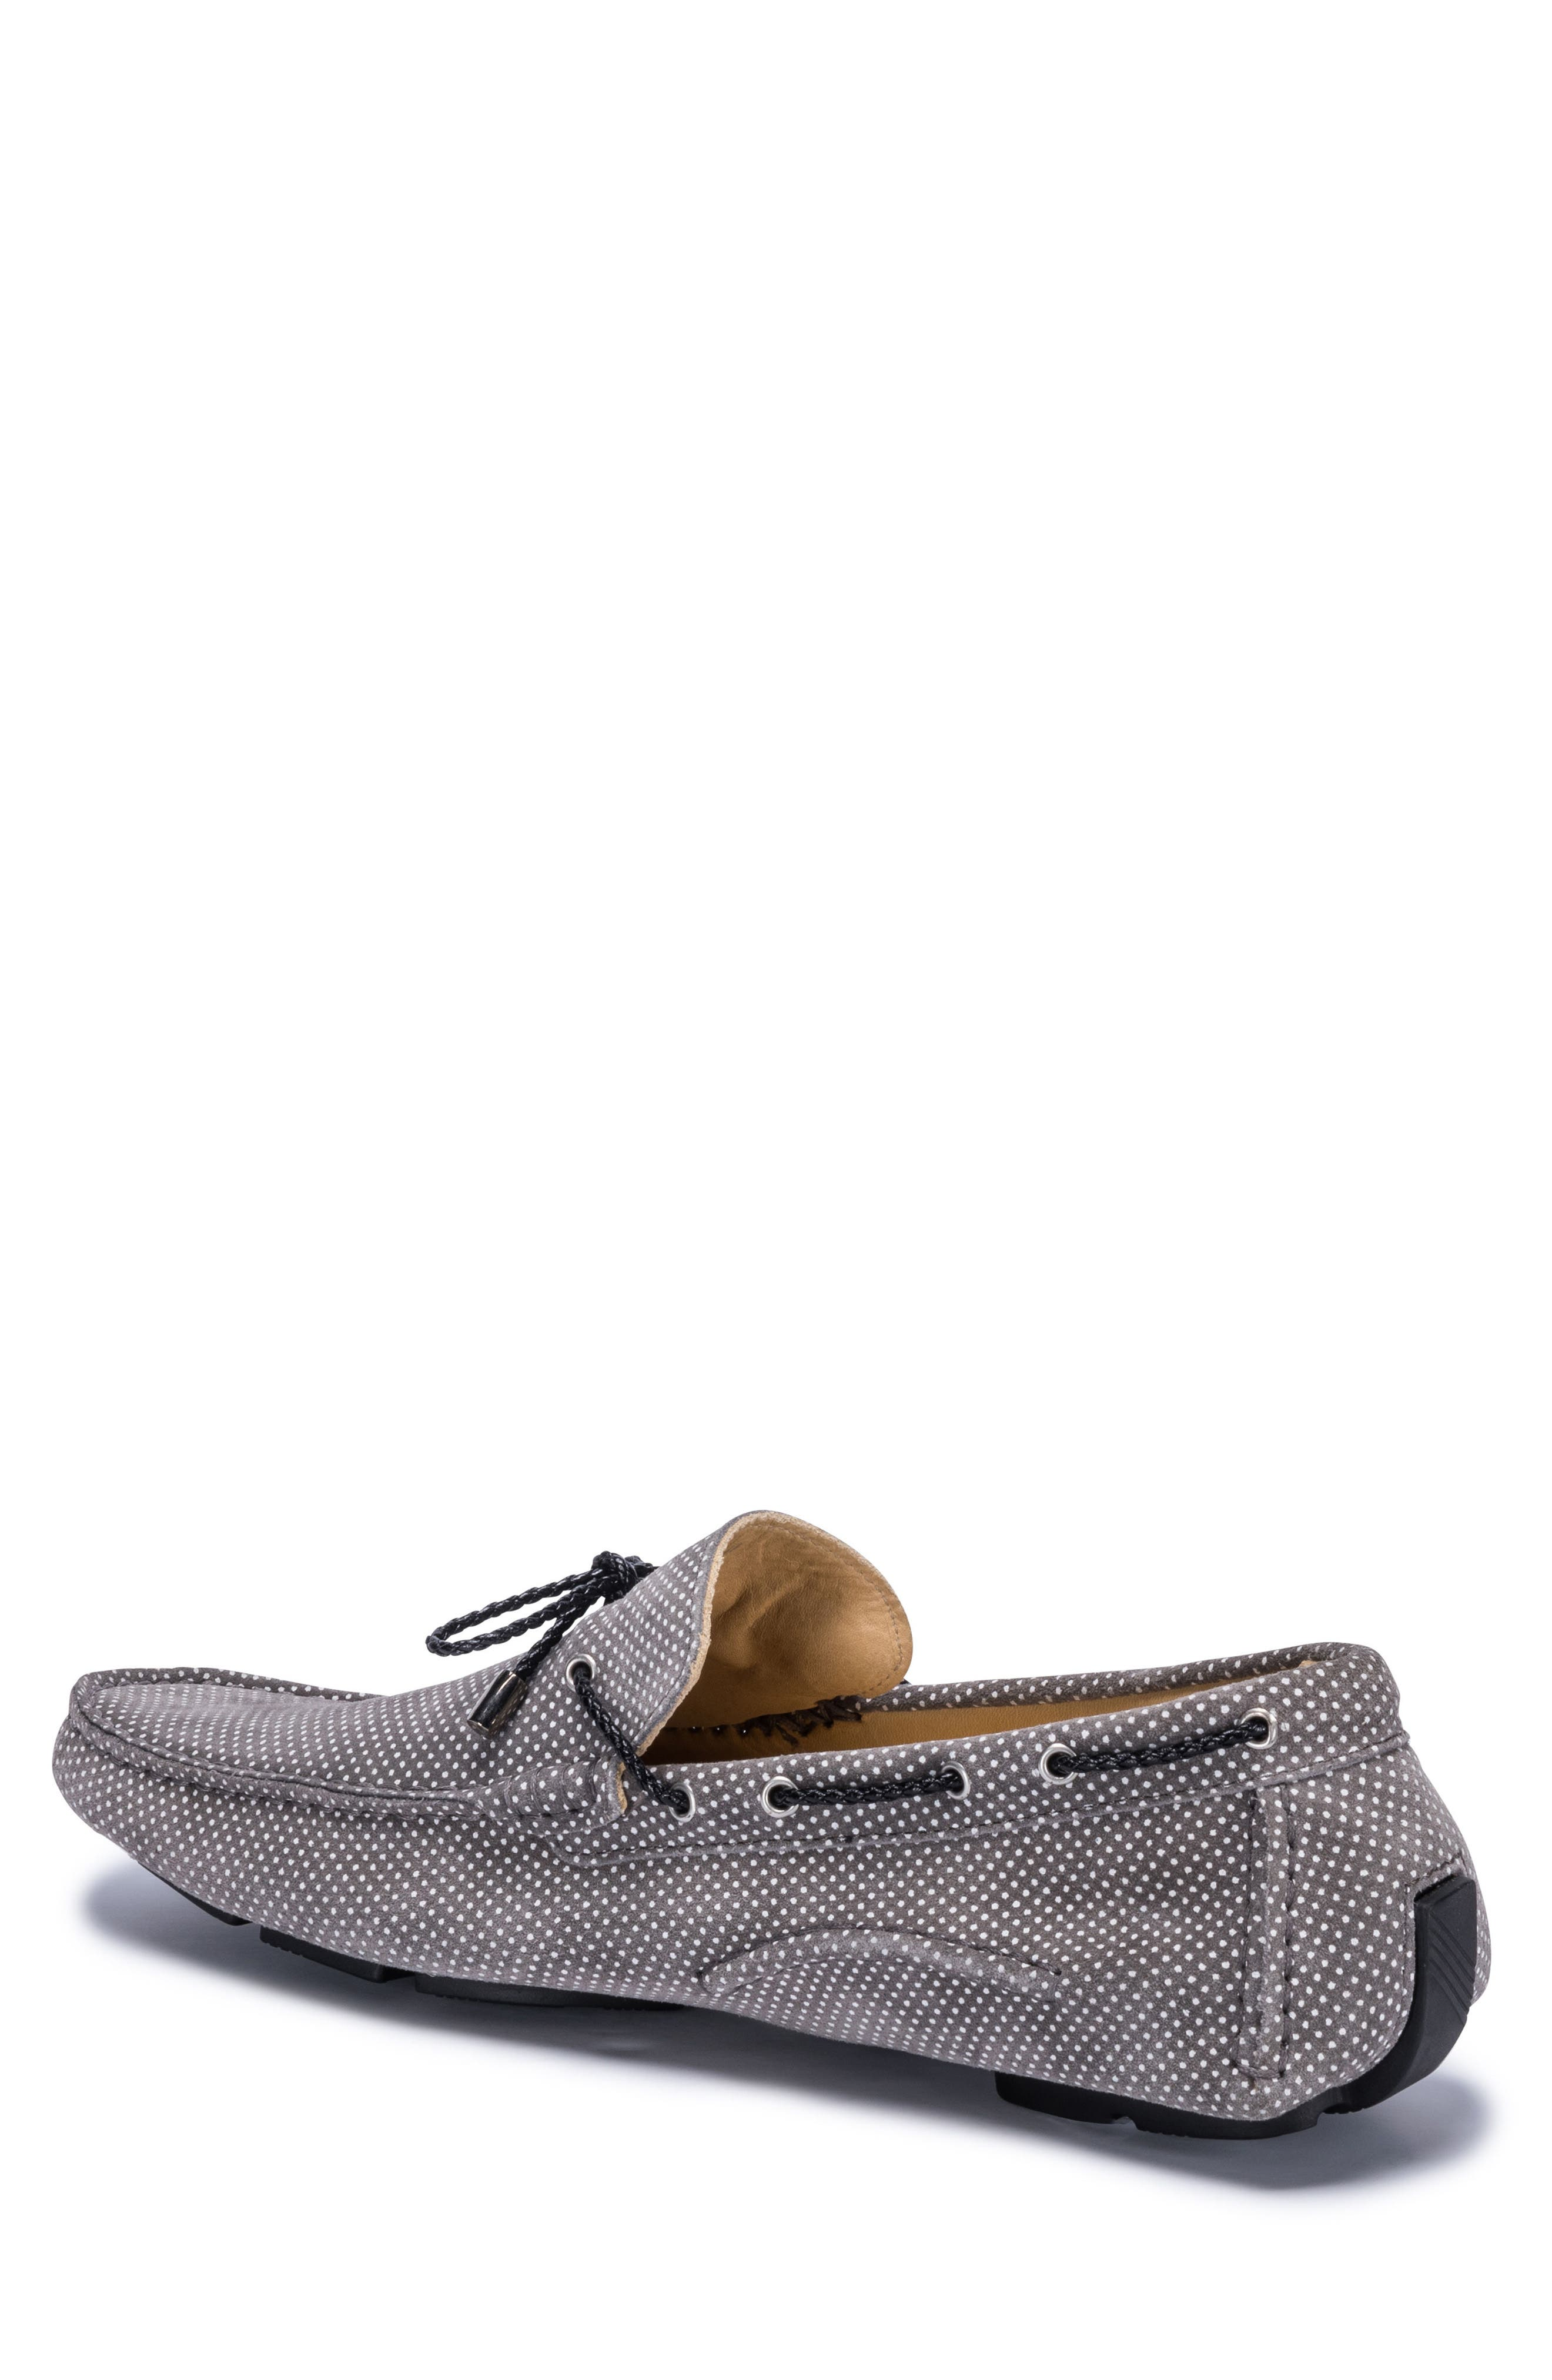 Sanremo Patterned Driving Loafer,                             Alternate thumbnail 2, color,                             GREY SUEDE